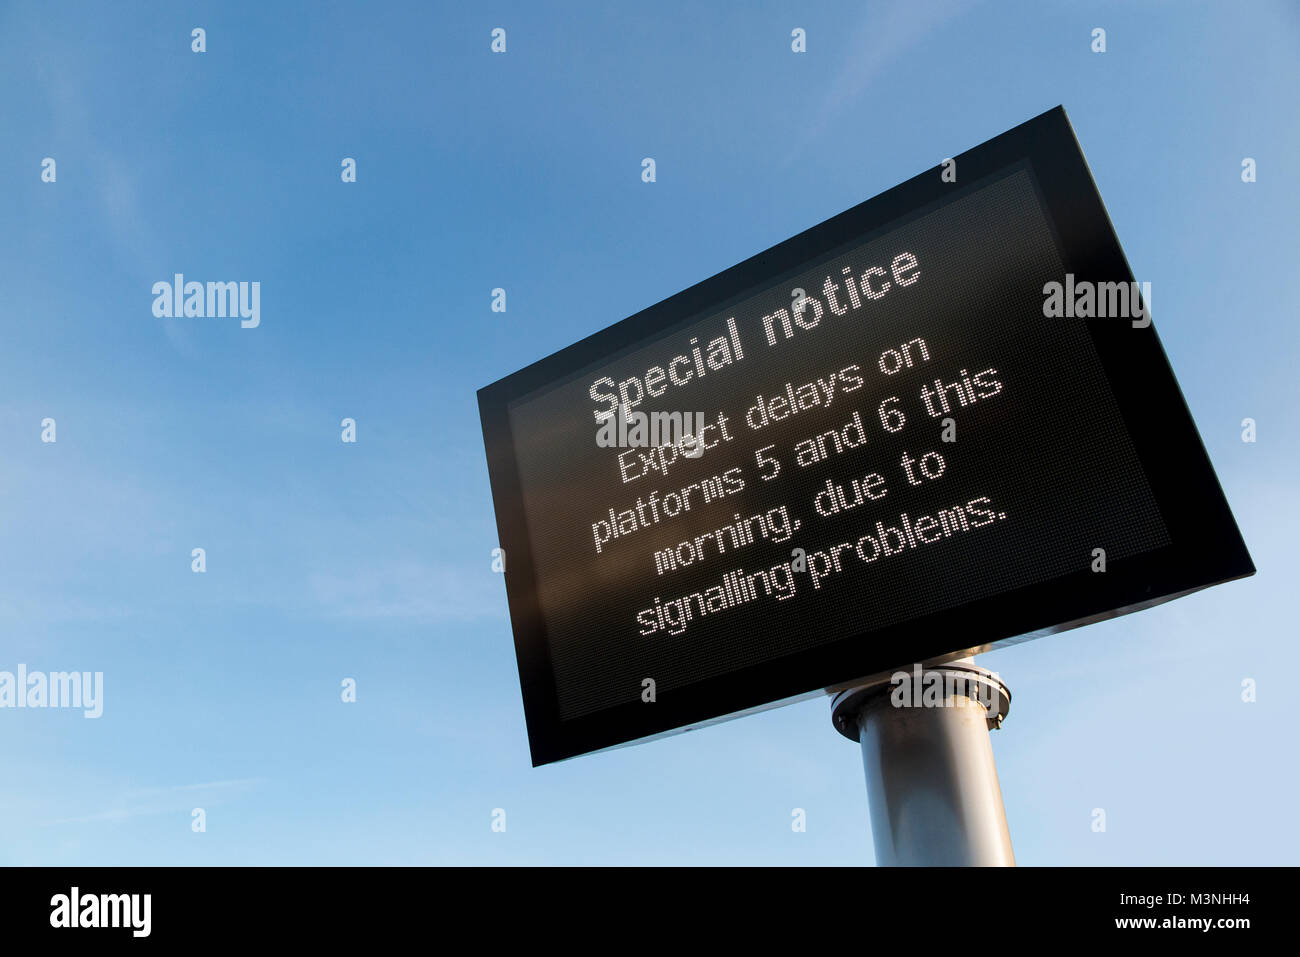 A sign at a railway station advising of delays because of signalling problems - Stock Image